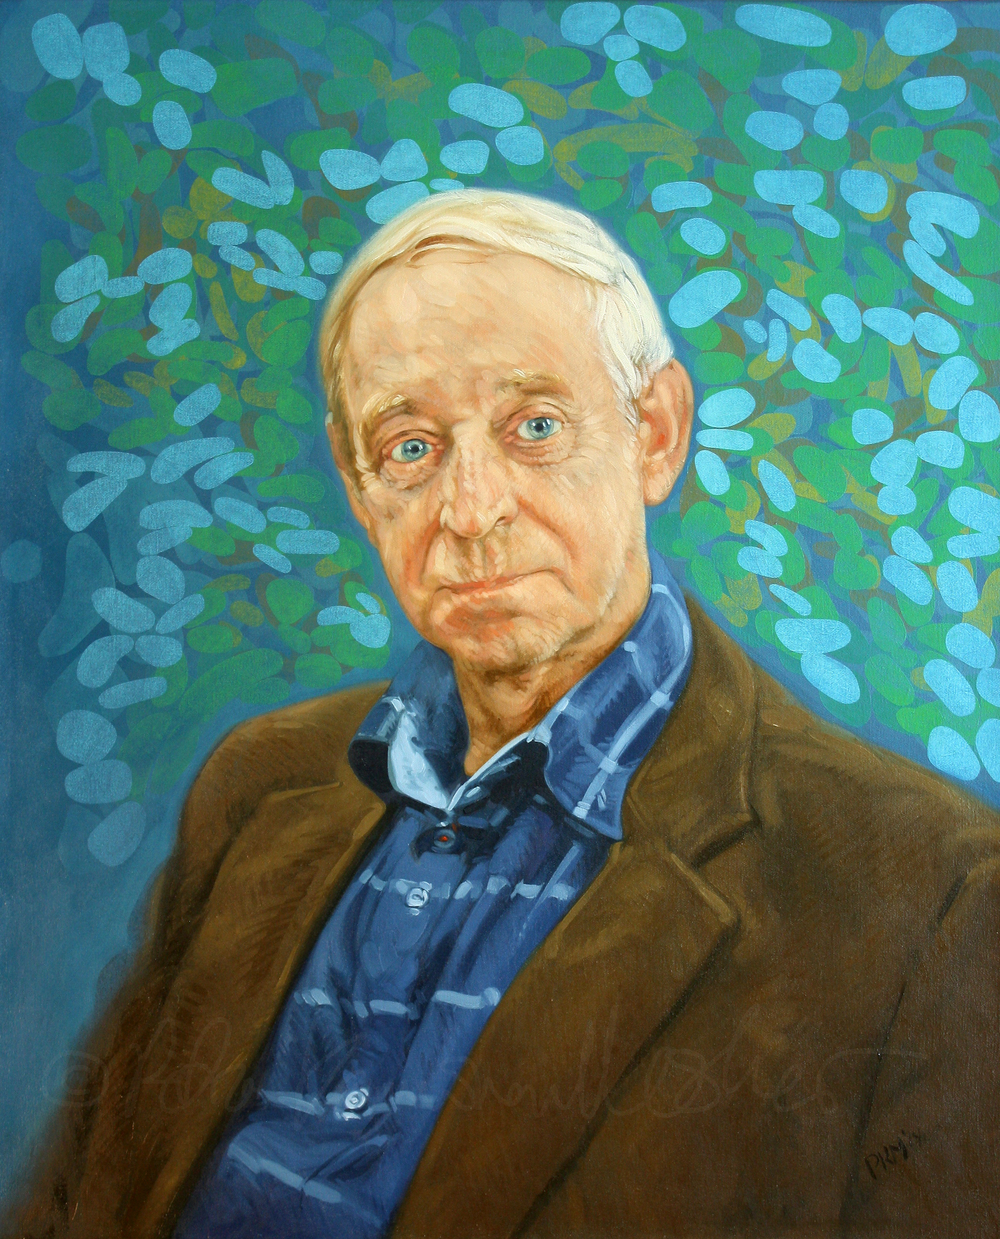 Pentti Simojoki, oil on canvas, 61 x 50cm, 2014